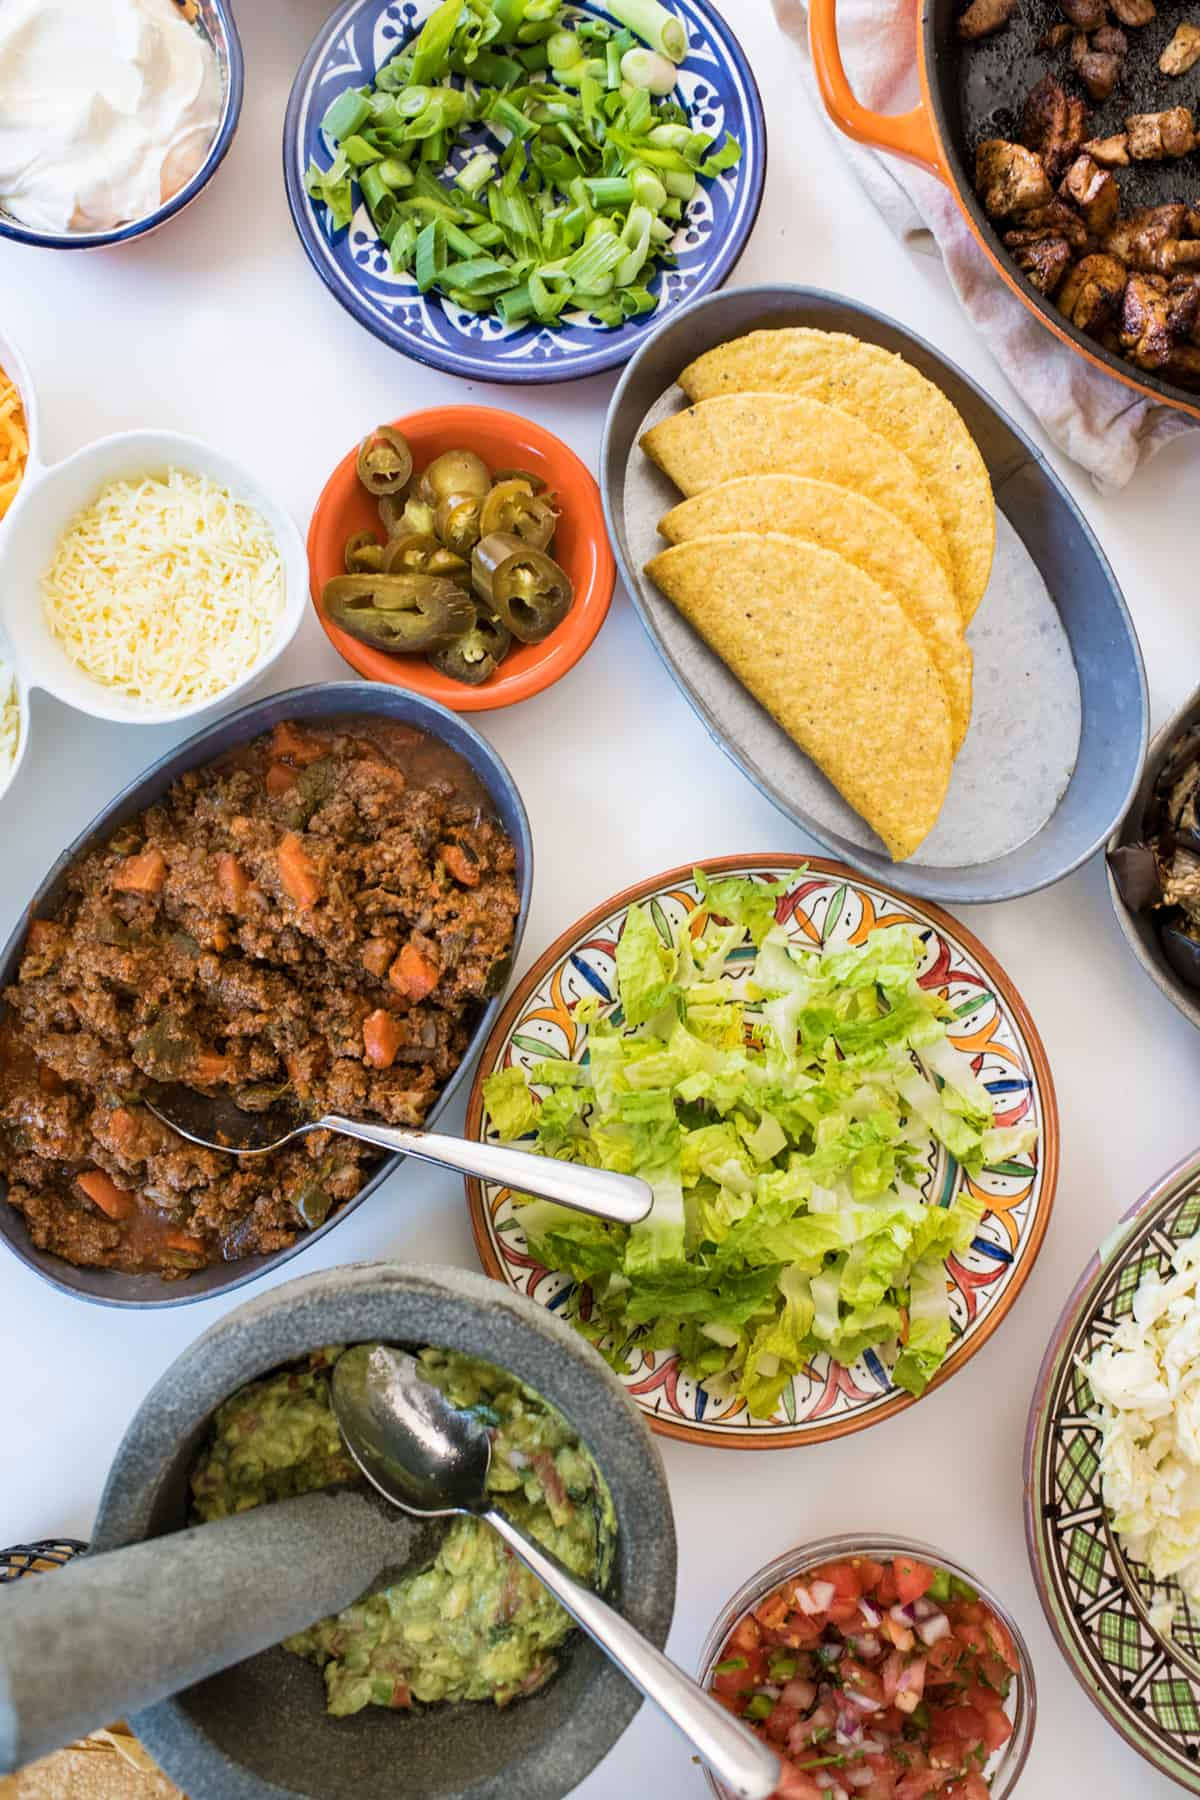 Ultimate taco bar night spread